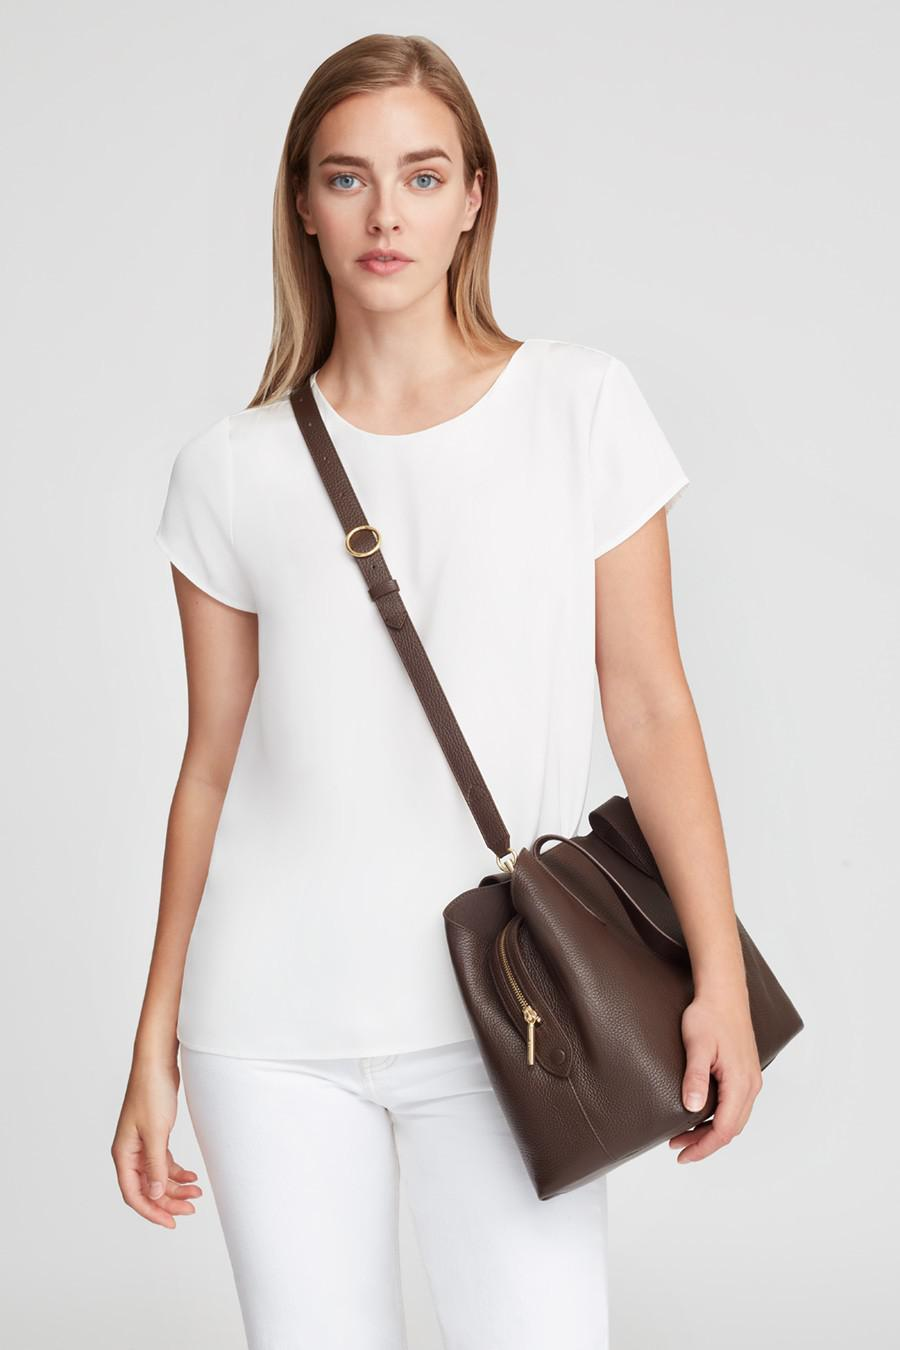 Women's Zippered Satchel Bag in Chocolate | Pebbled Leather by Cuyana 6